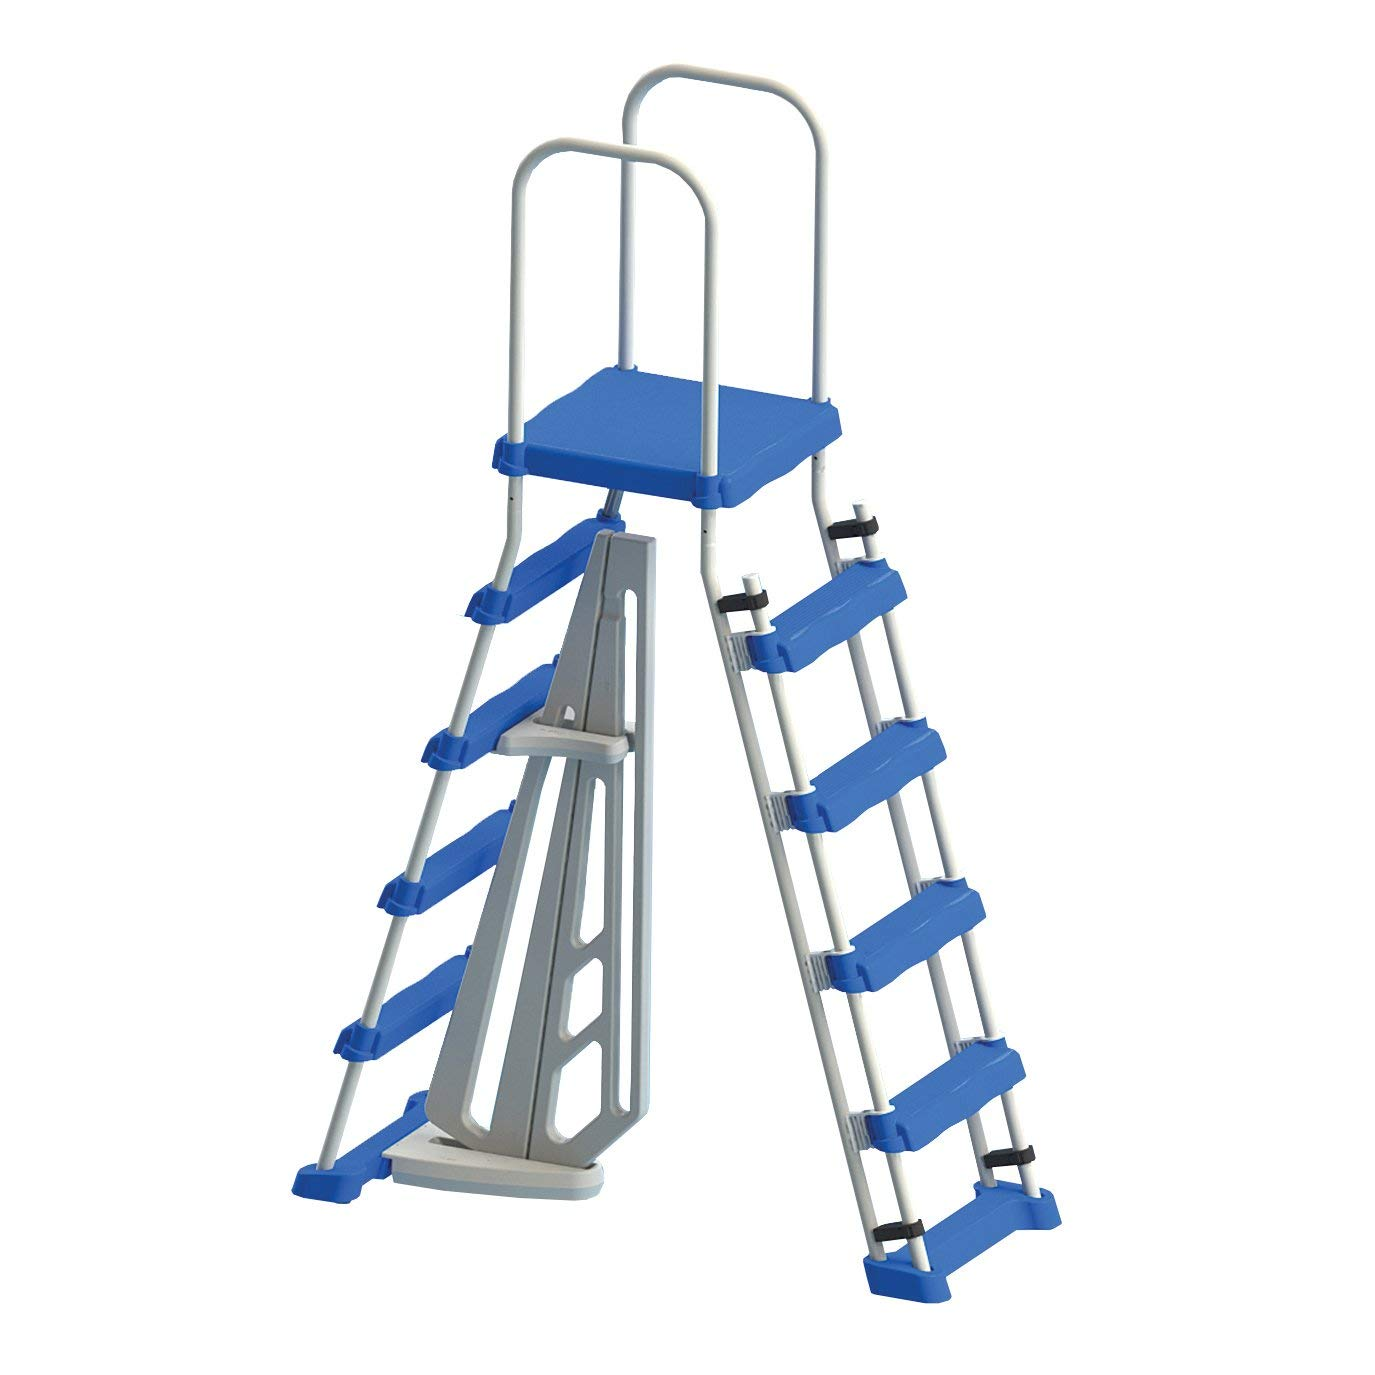 Swimline Above Ground Pool A Frame Ladder with Barrier for 48 Inch Pools | 87950 by International Leisure